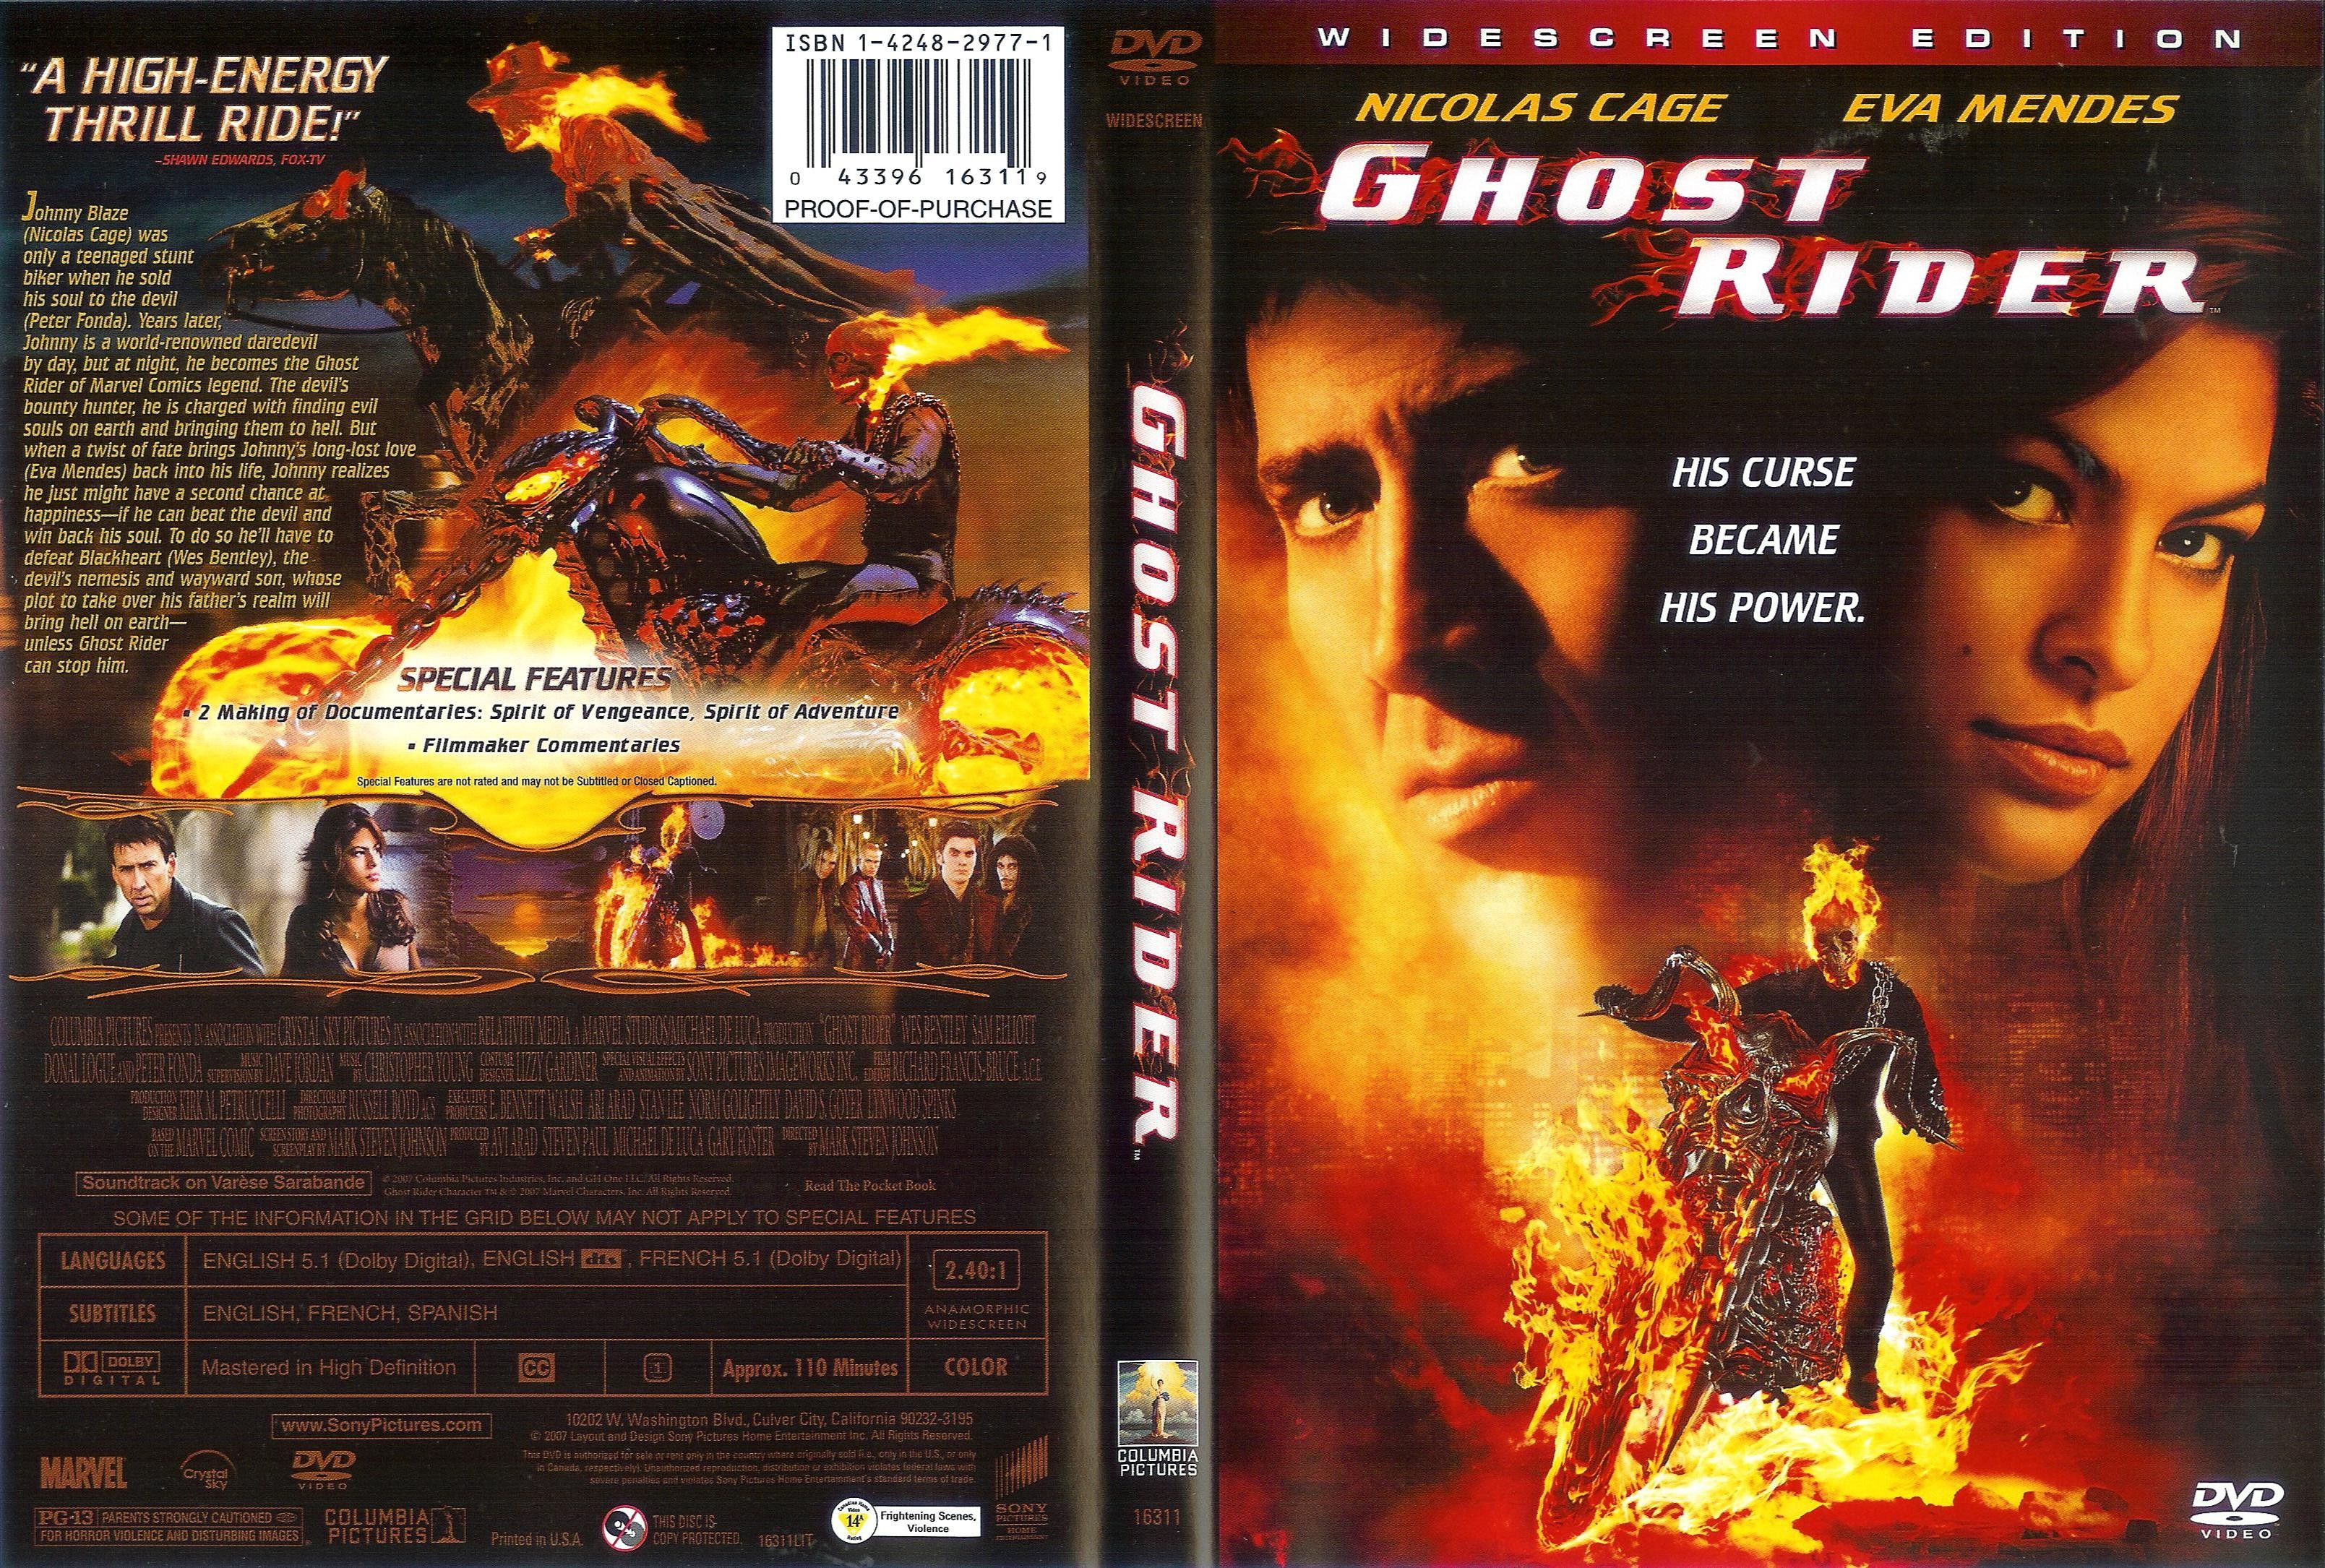 Ghost rider 2 in nackt nude movie